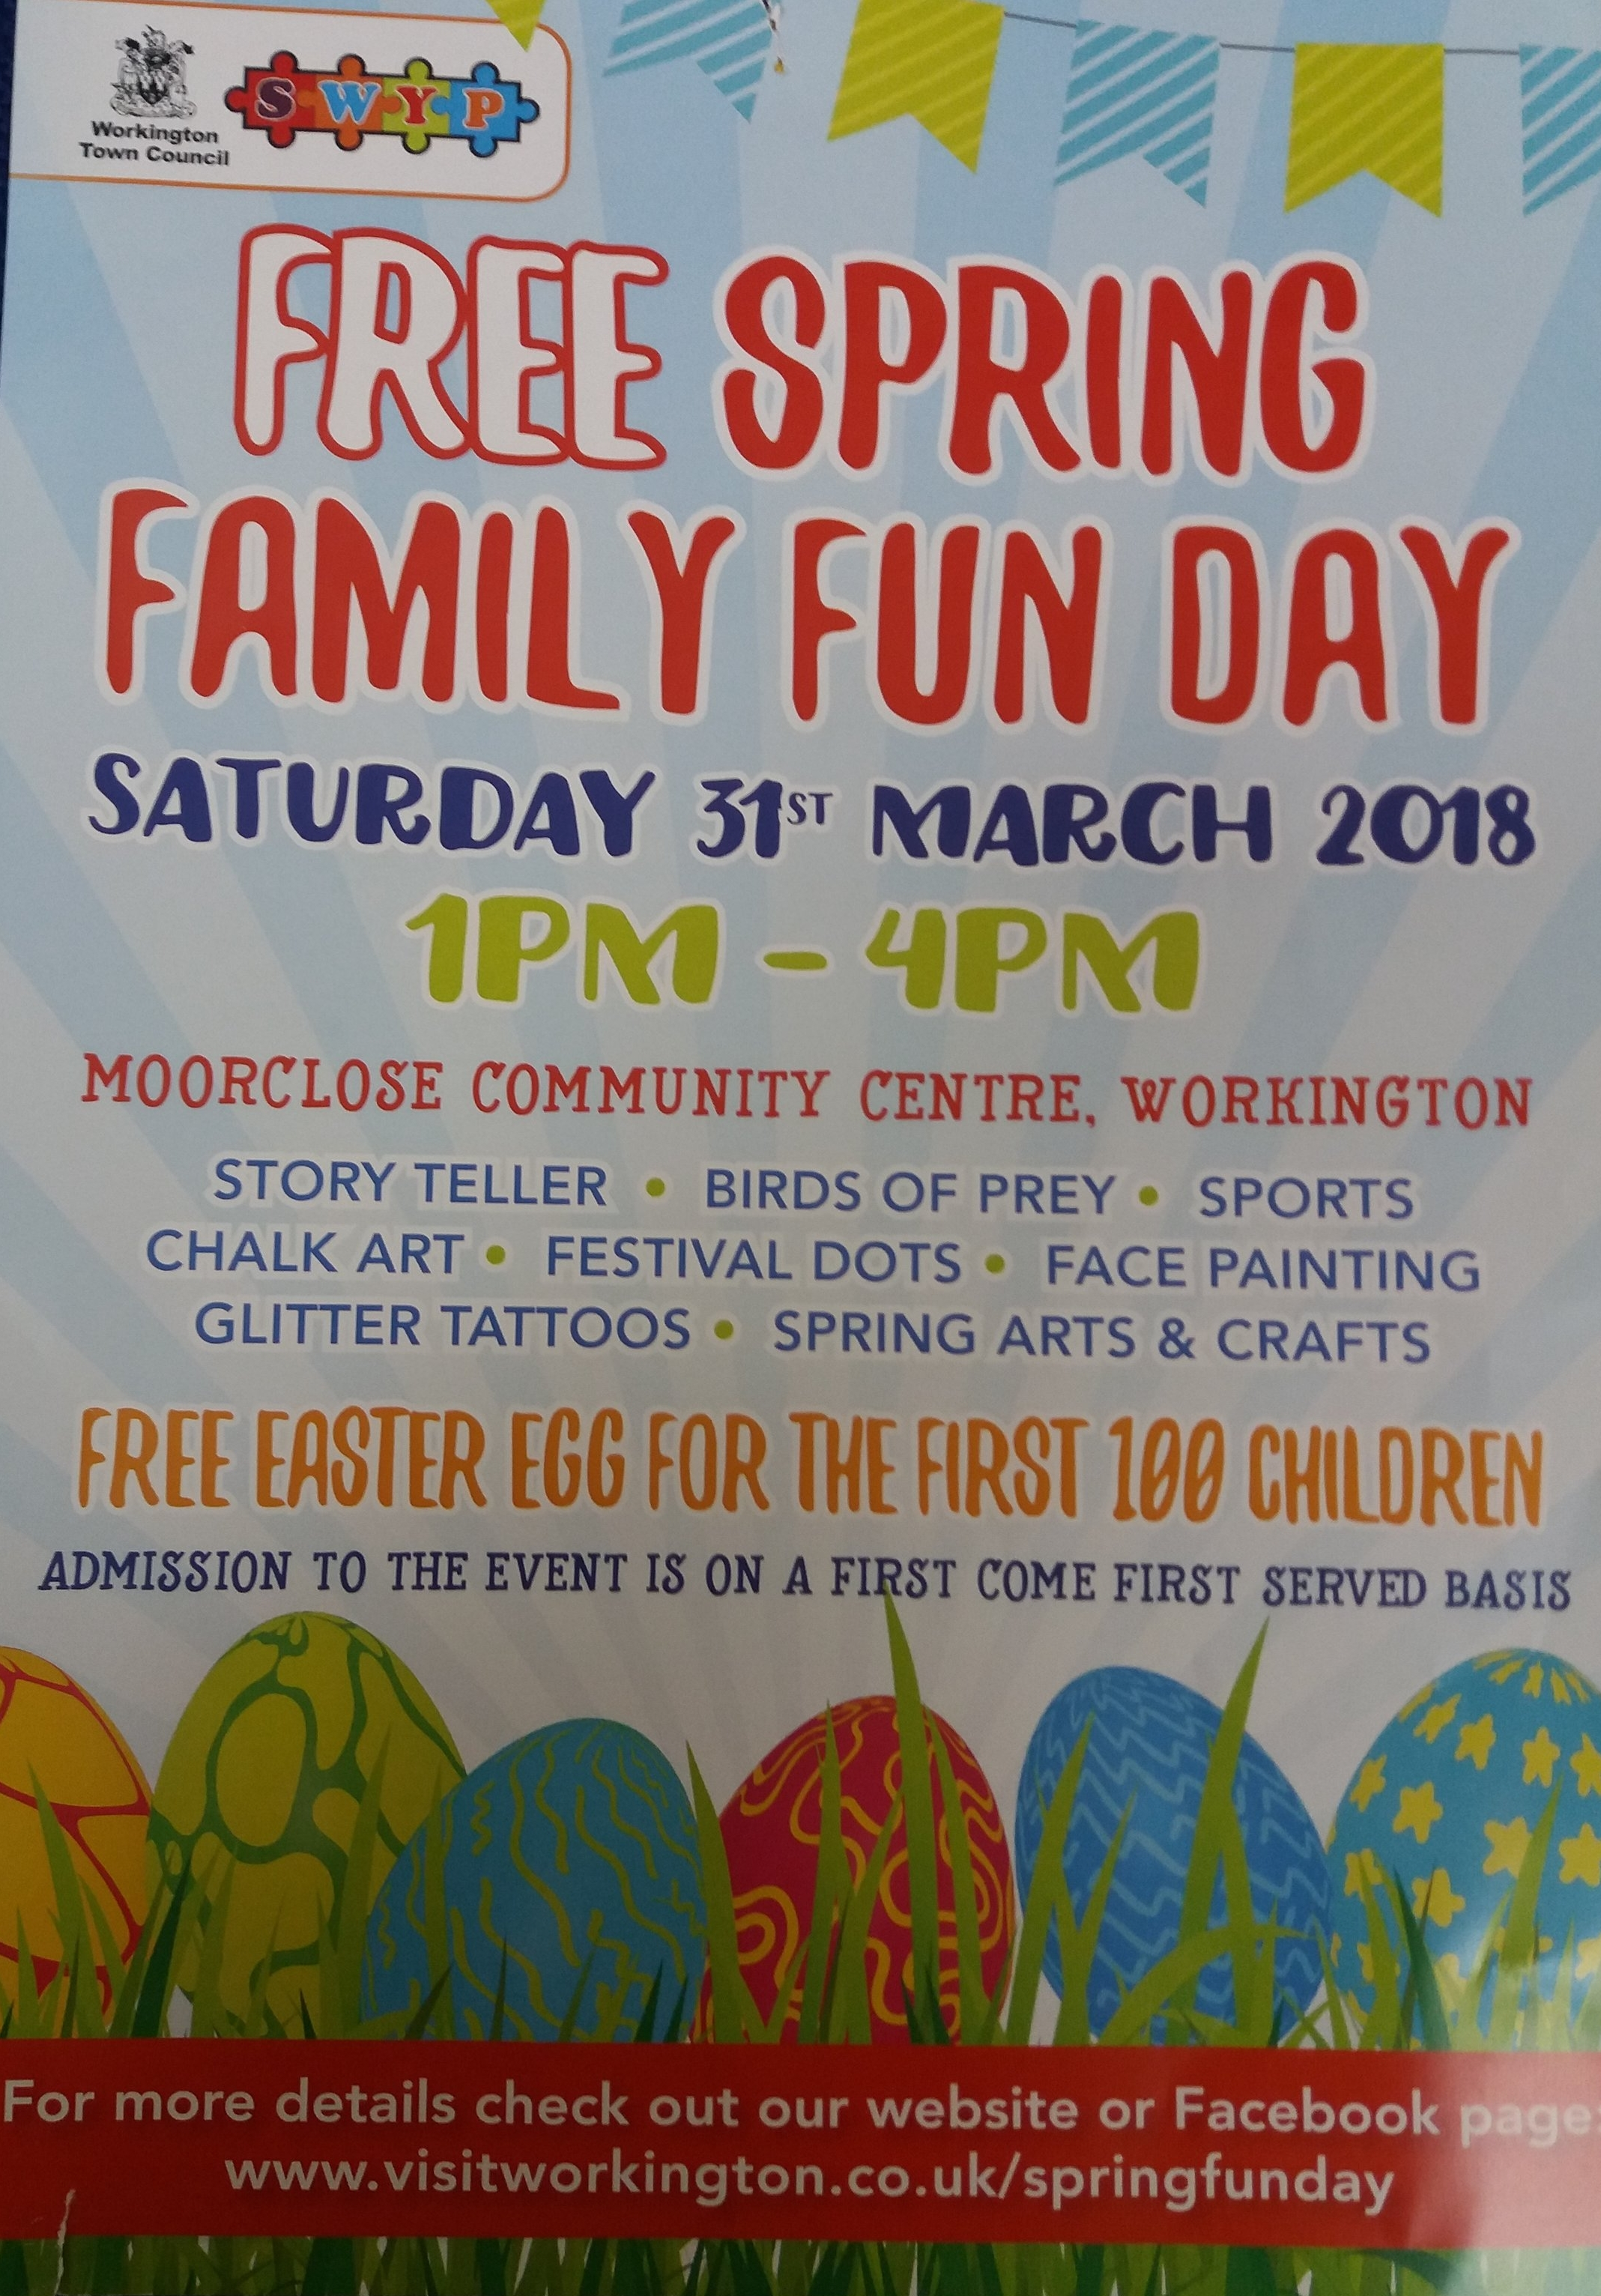 Spring Family Fun Day at Moorclose Community Centre